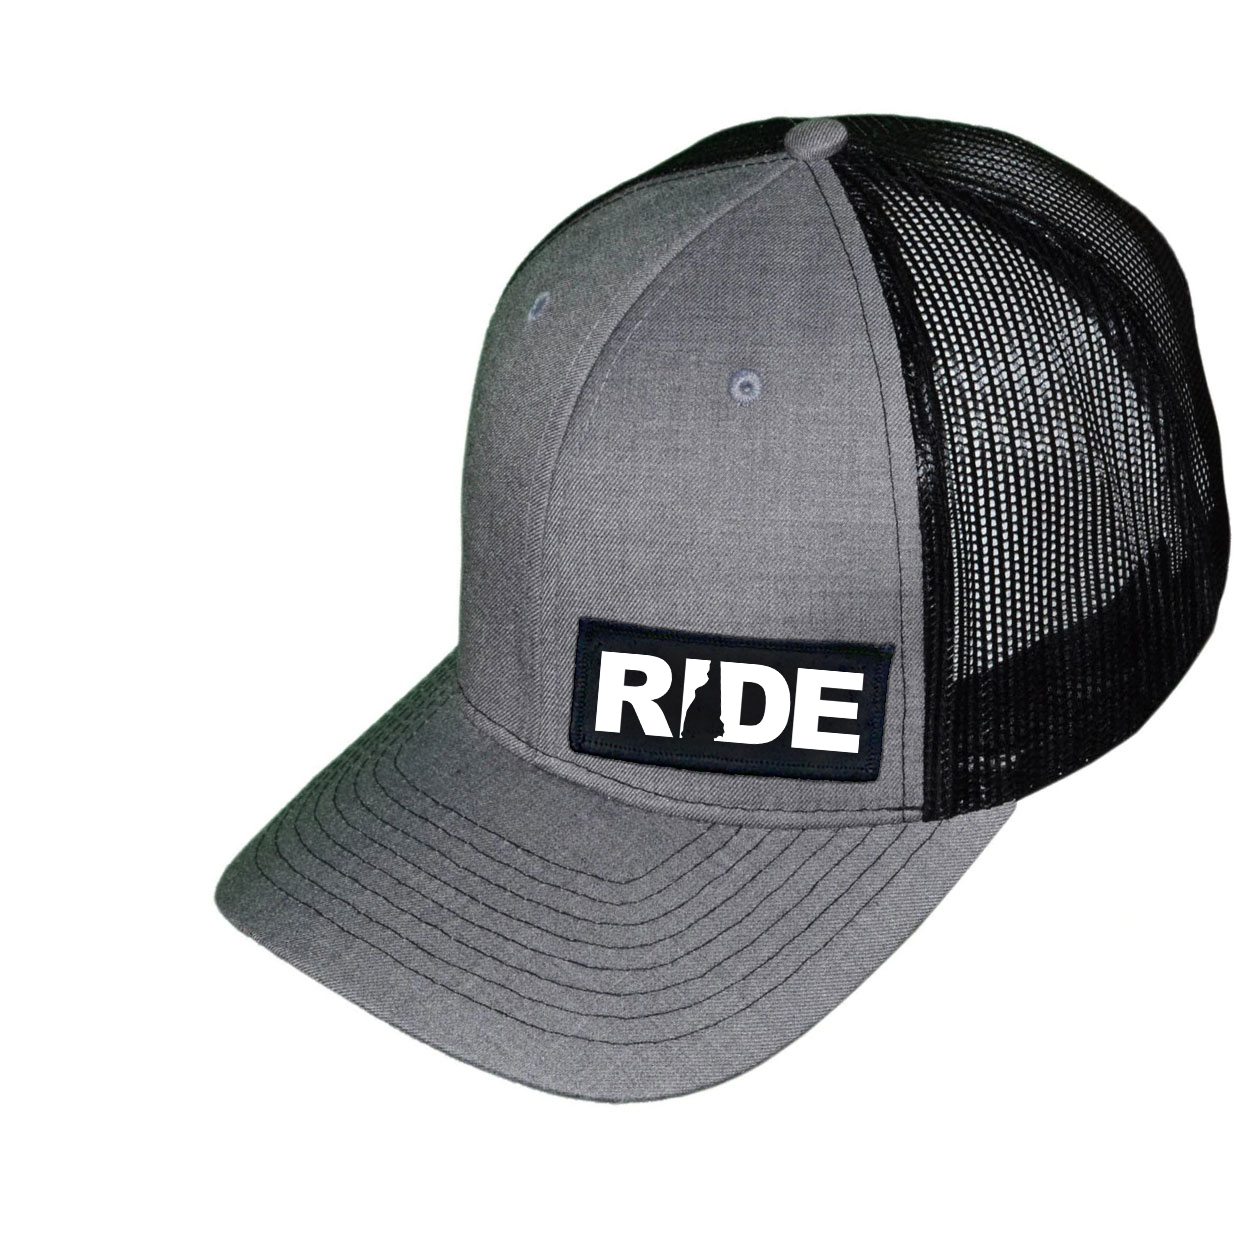 Ride New Hampshire Night Out Woven Patch Snapback Trucker Hat Heather Gray/Black (White Logo)